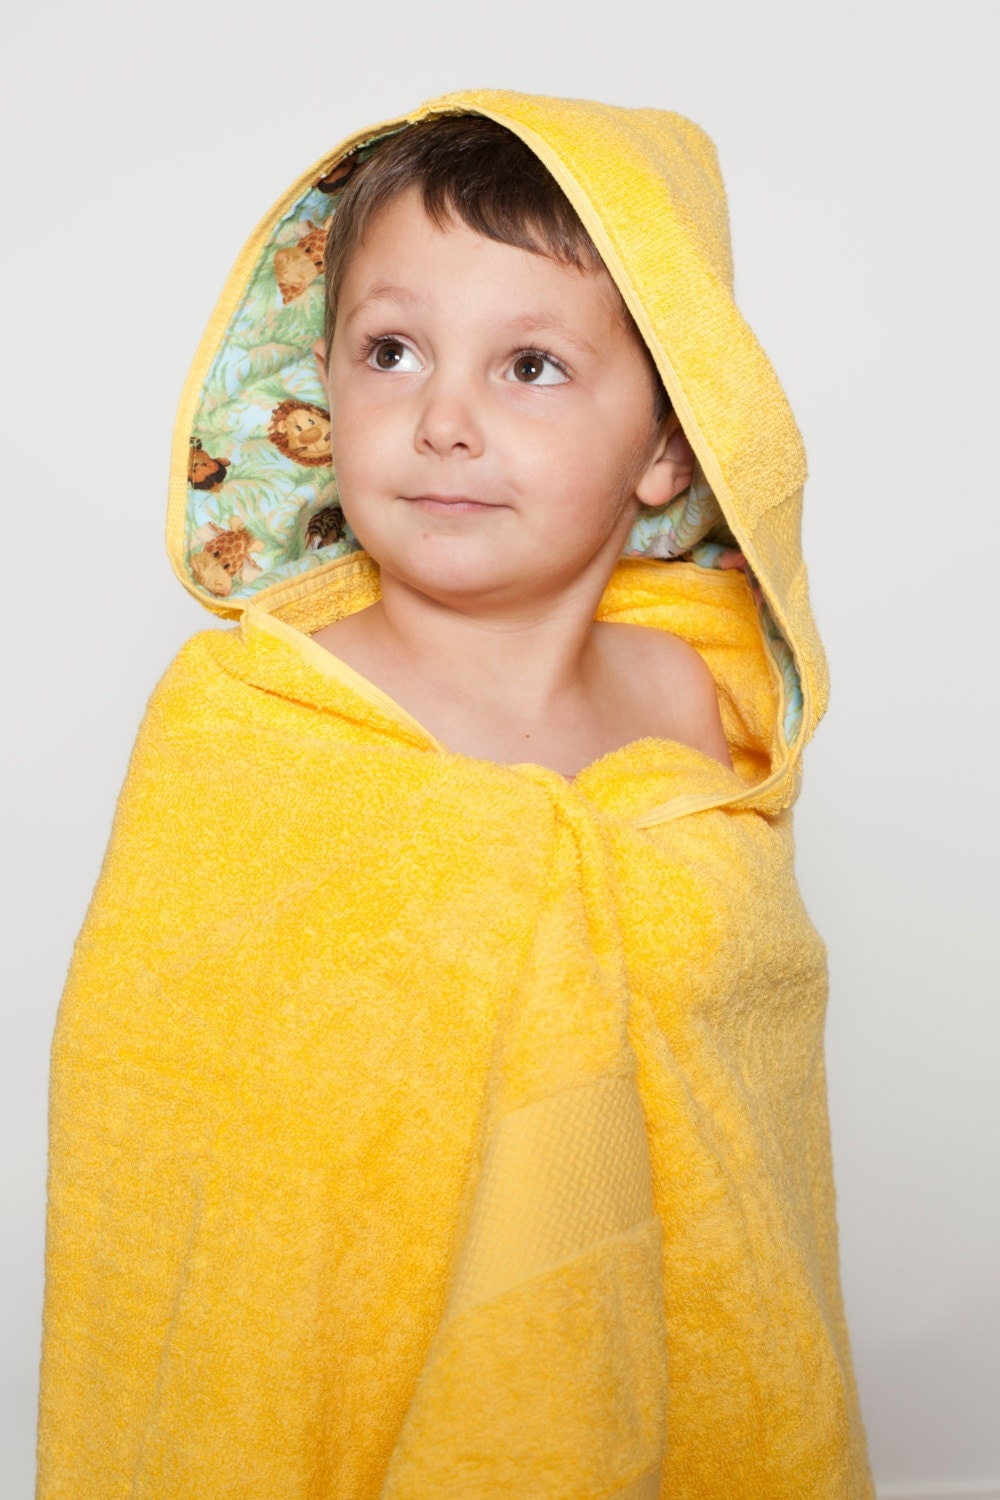 personalized hooded baby towel baby bath towel kids hooded. Black Bedroom Furniture Sets. Home Design Ideas